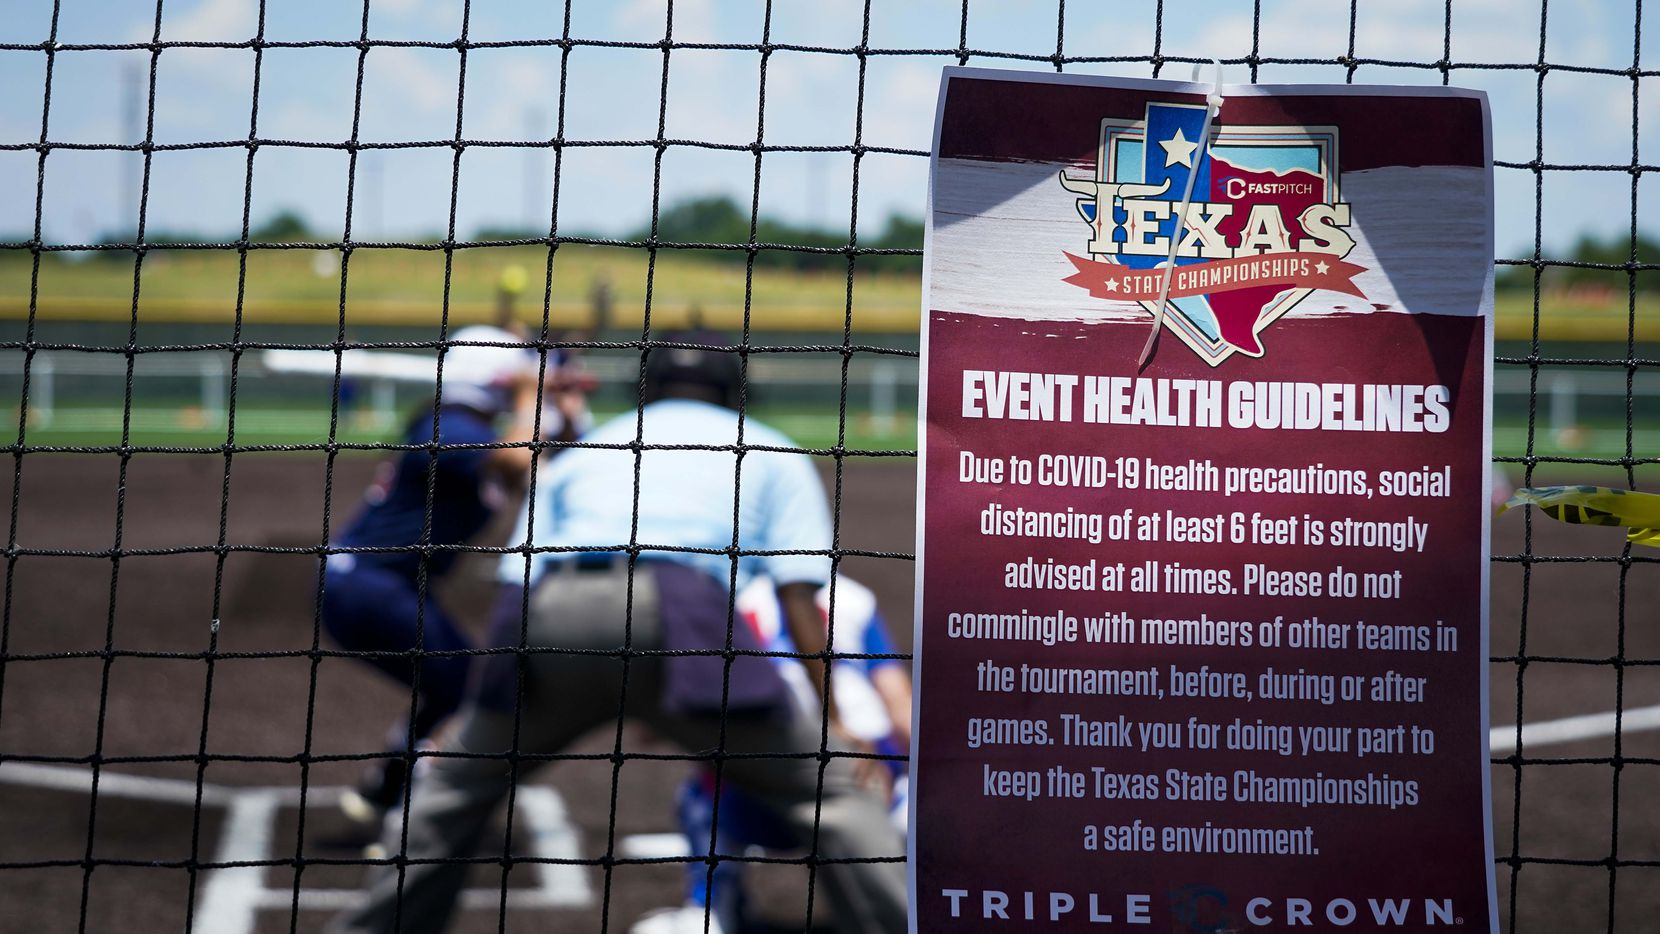 A sign encouraging social distancing, and discourage commingling of teams, hangs on the backstop during a game between the Texas Glory 18U team (in white jerseys) and the American Freedom Gold Coleman 18U in the Triple Crown Texas State Tournament at Spirit Park on Monday, June 15, 2020, in Allen, Texas.